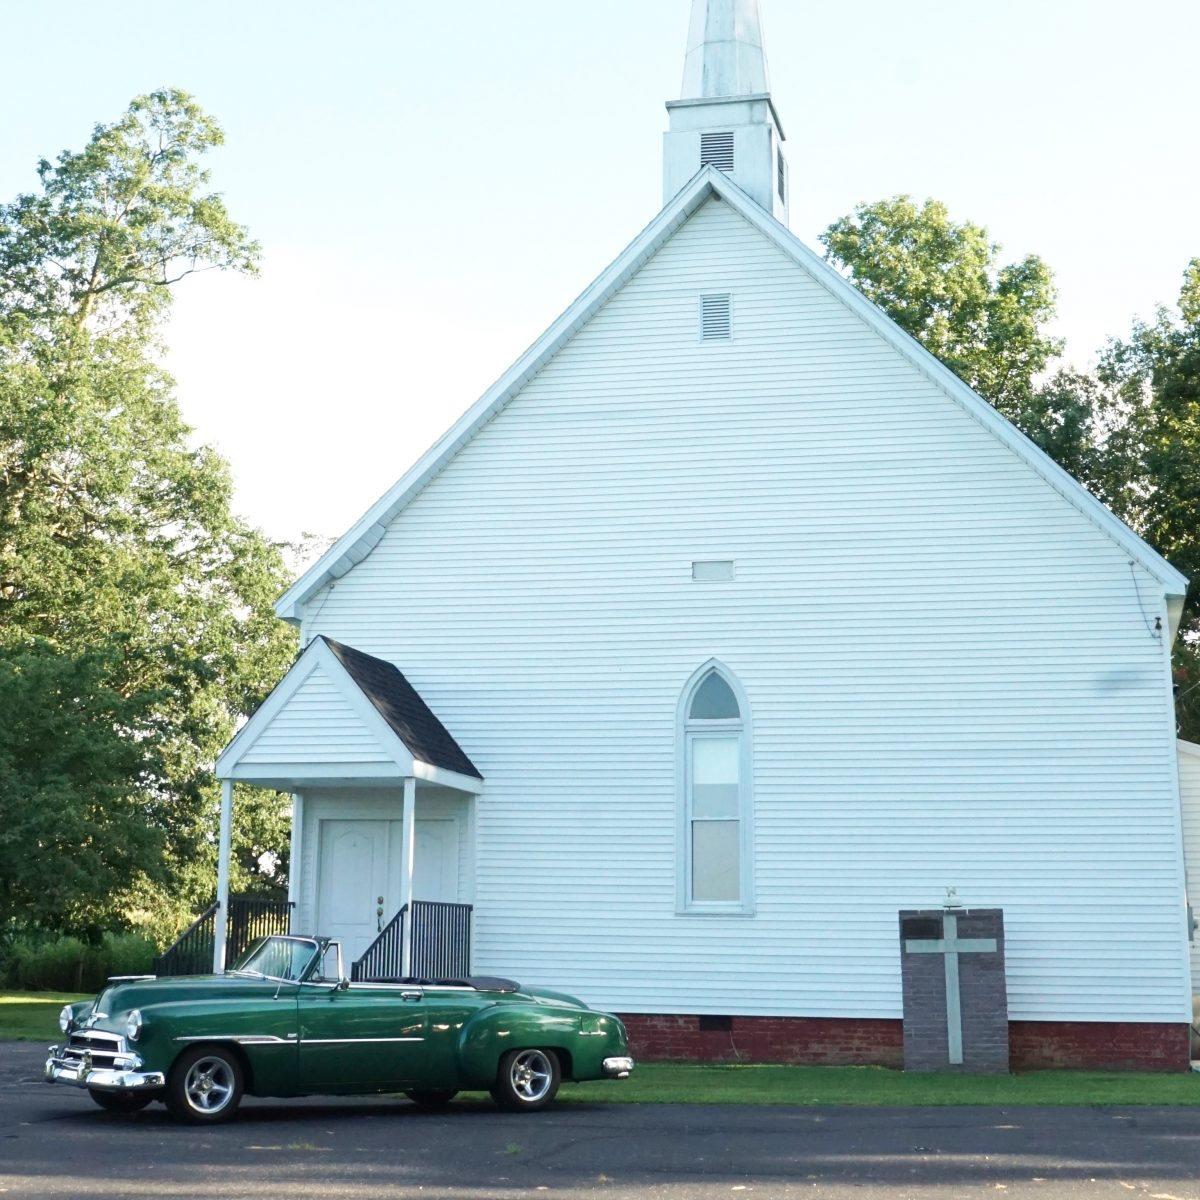 photo of classic car in front of white church